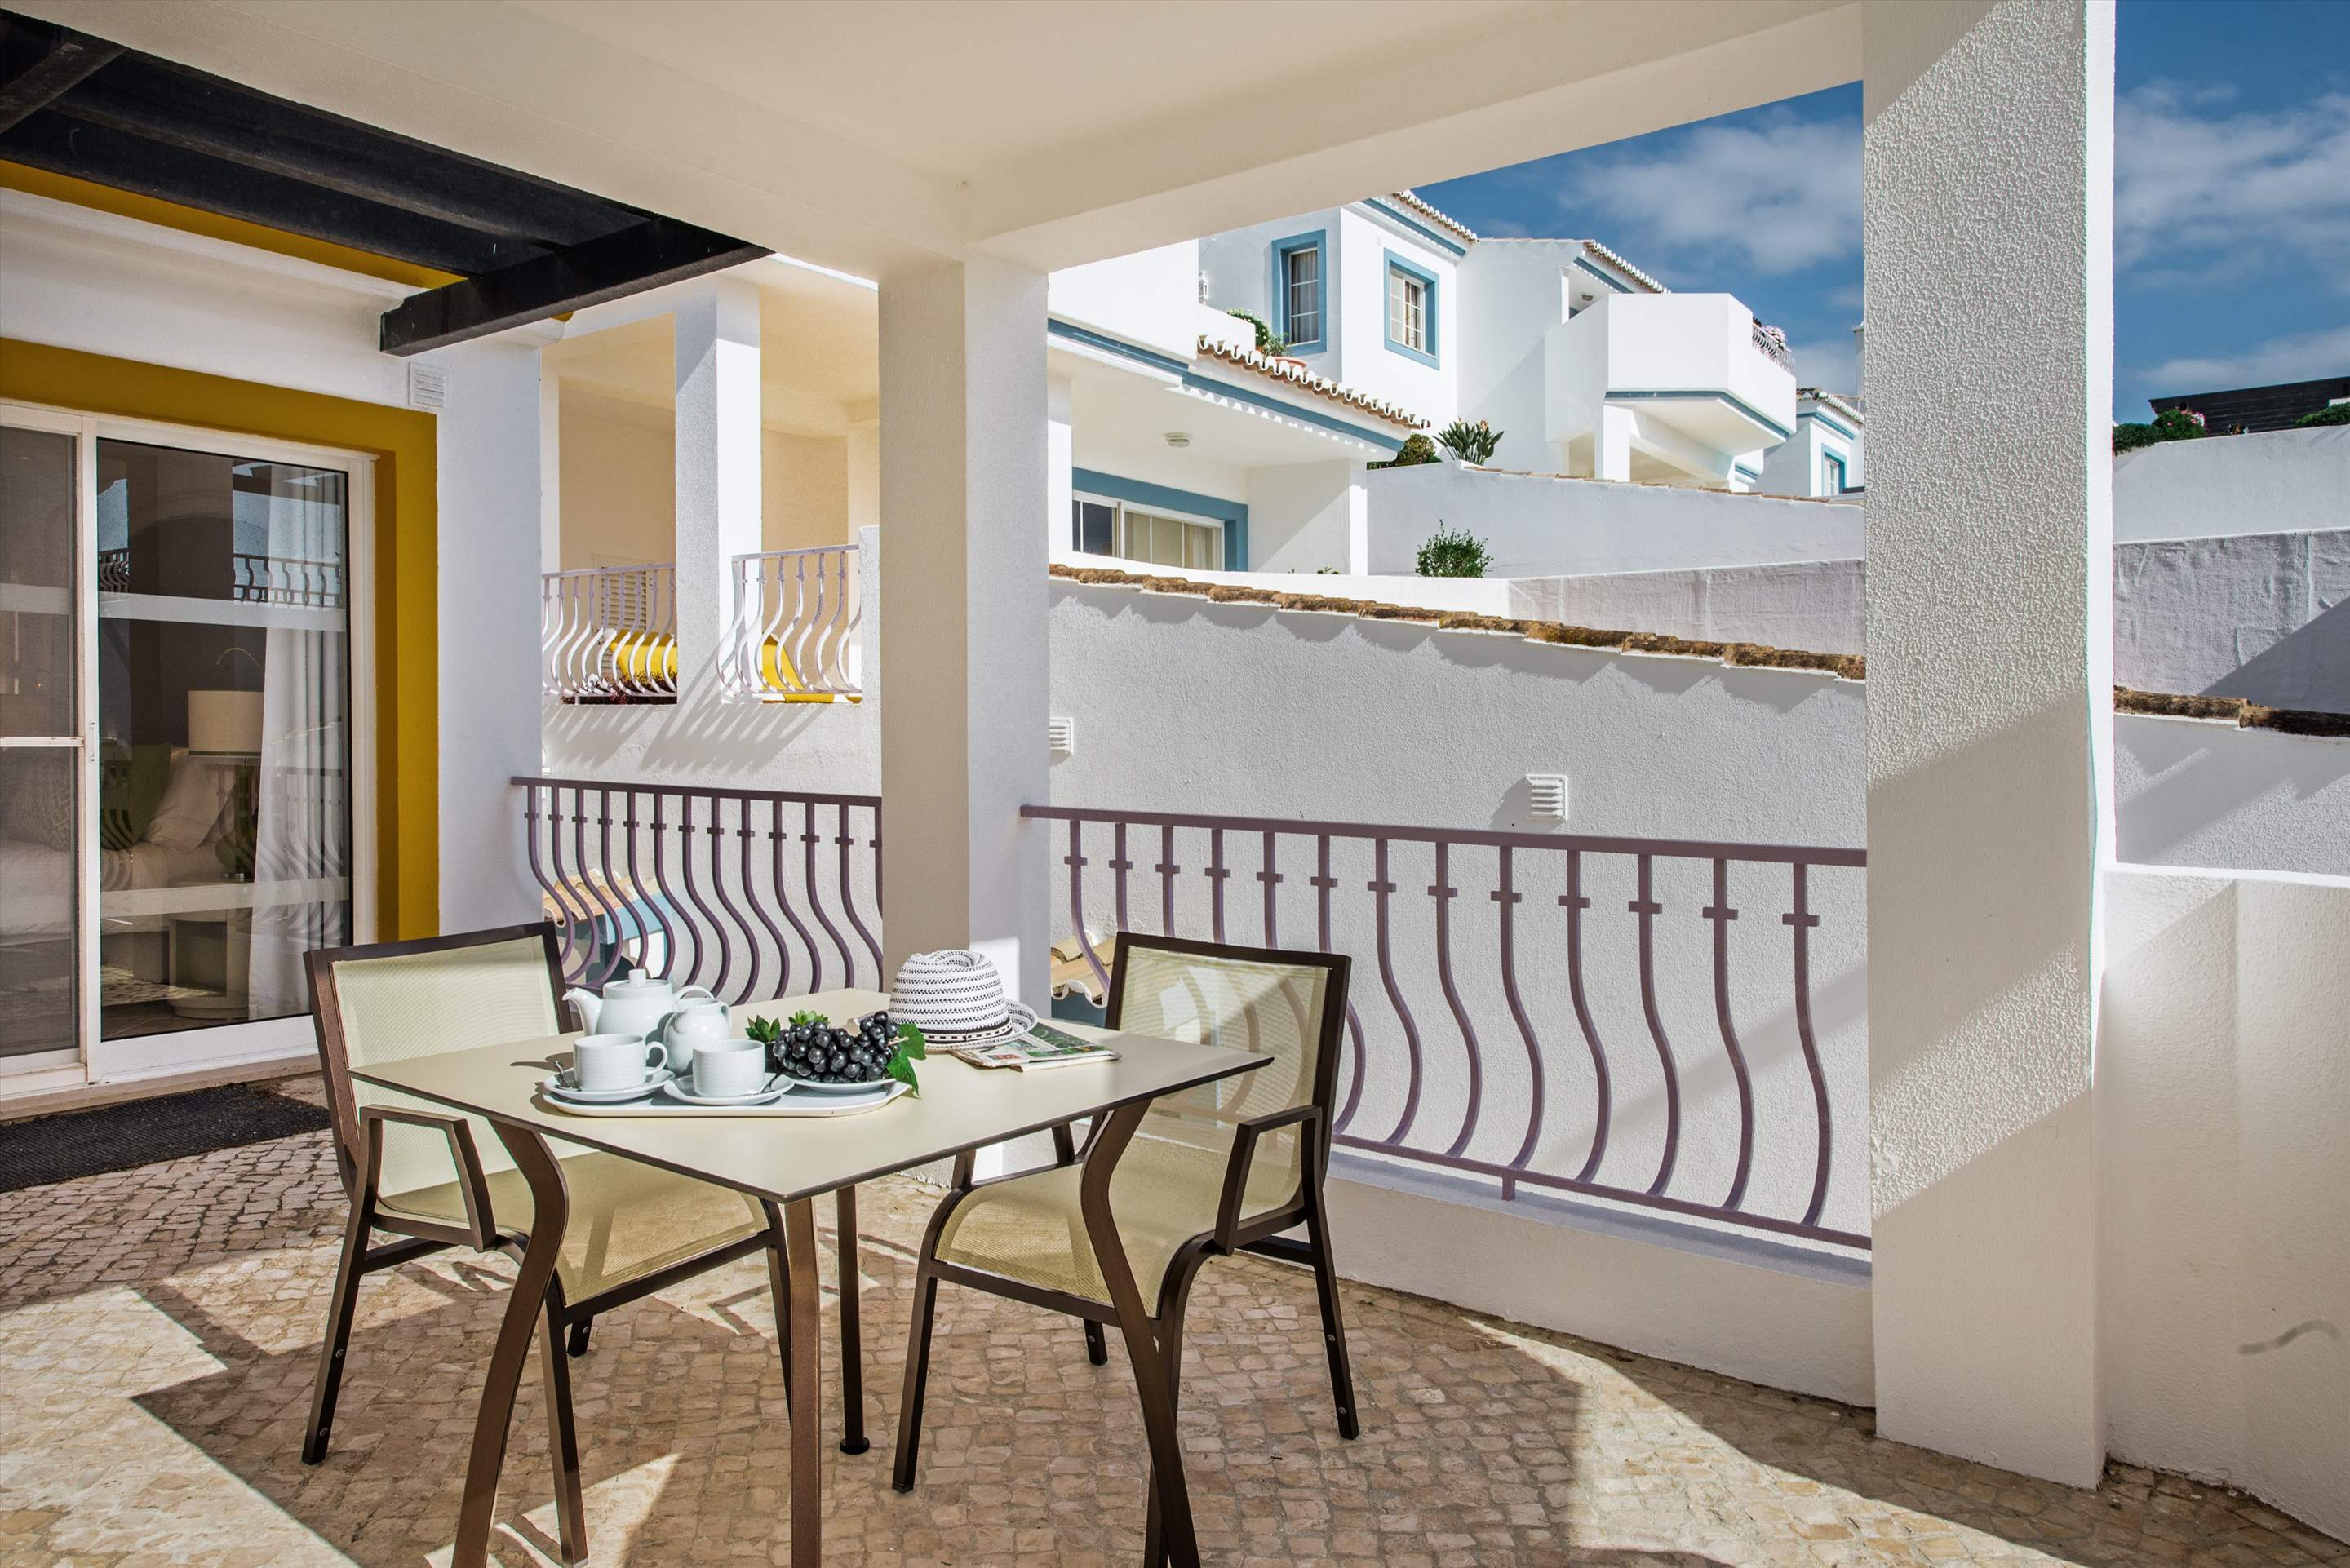 Four Seasons Fairways 3 Bed Hillside Apartment, Thursday Arrival, 3 bedroom villa in Four Seasons Fairways, Algarve Photo #17